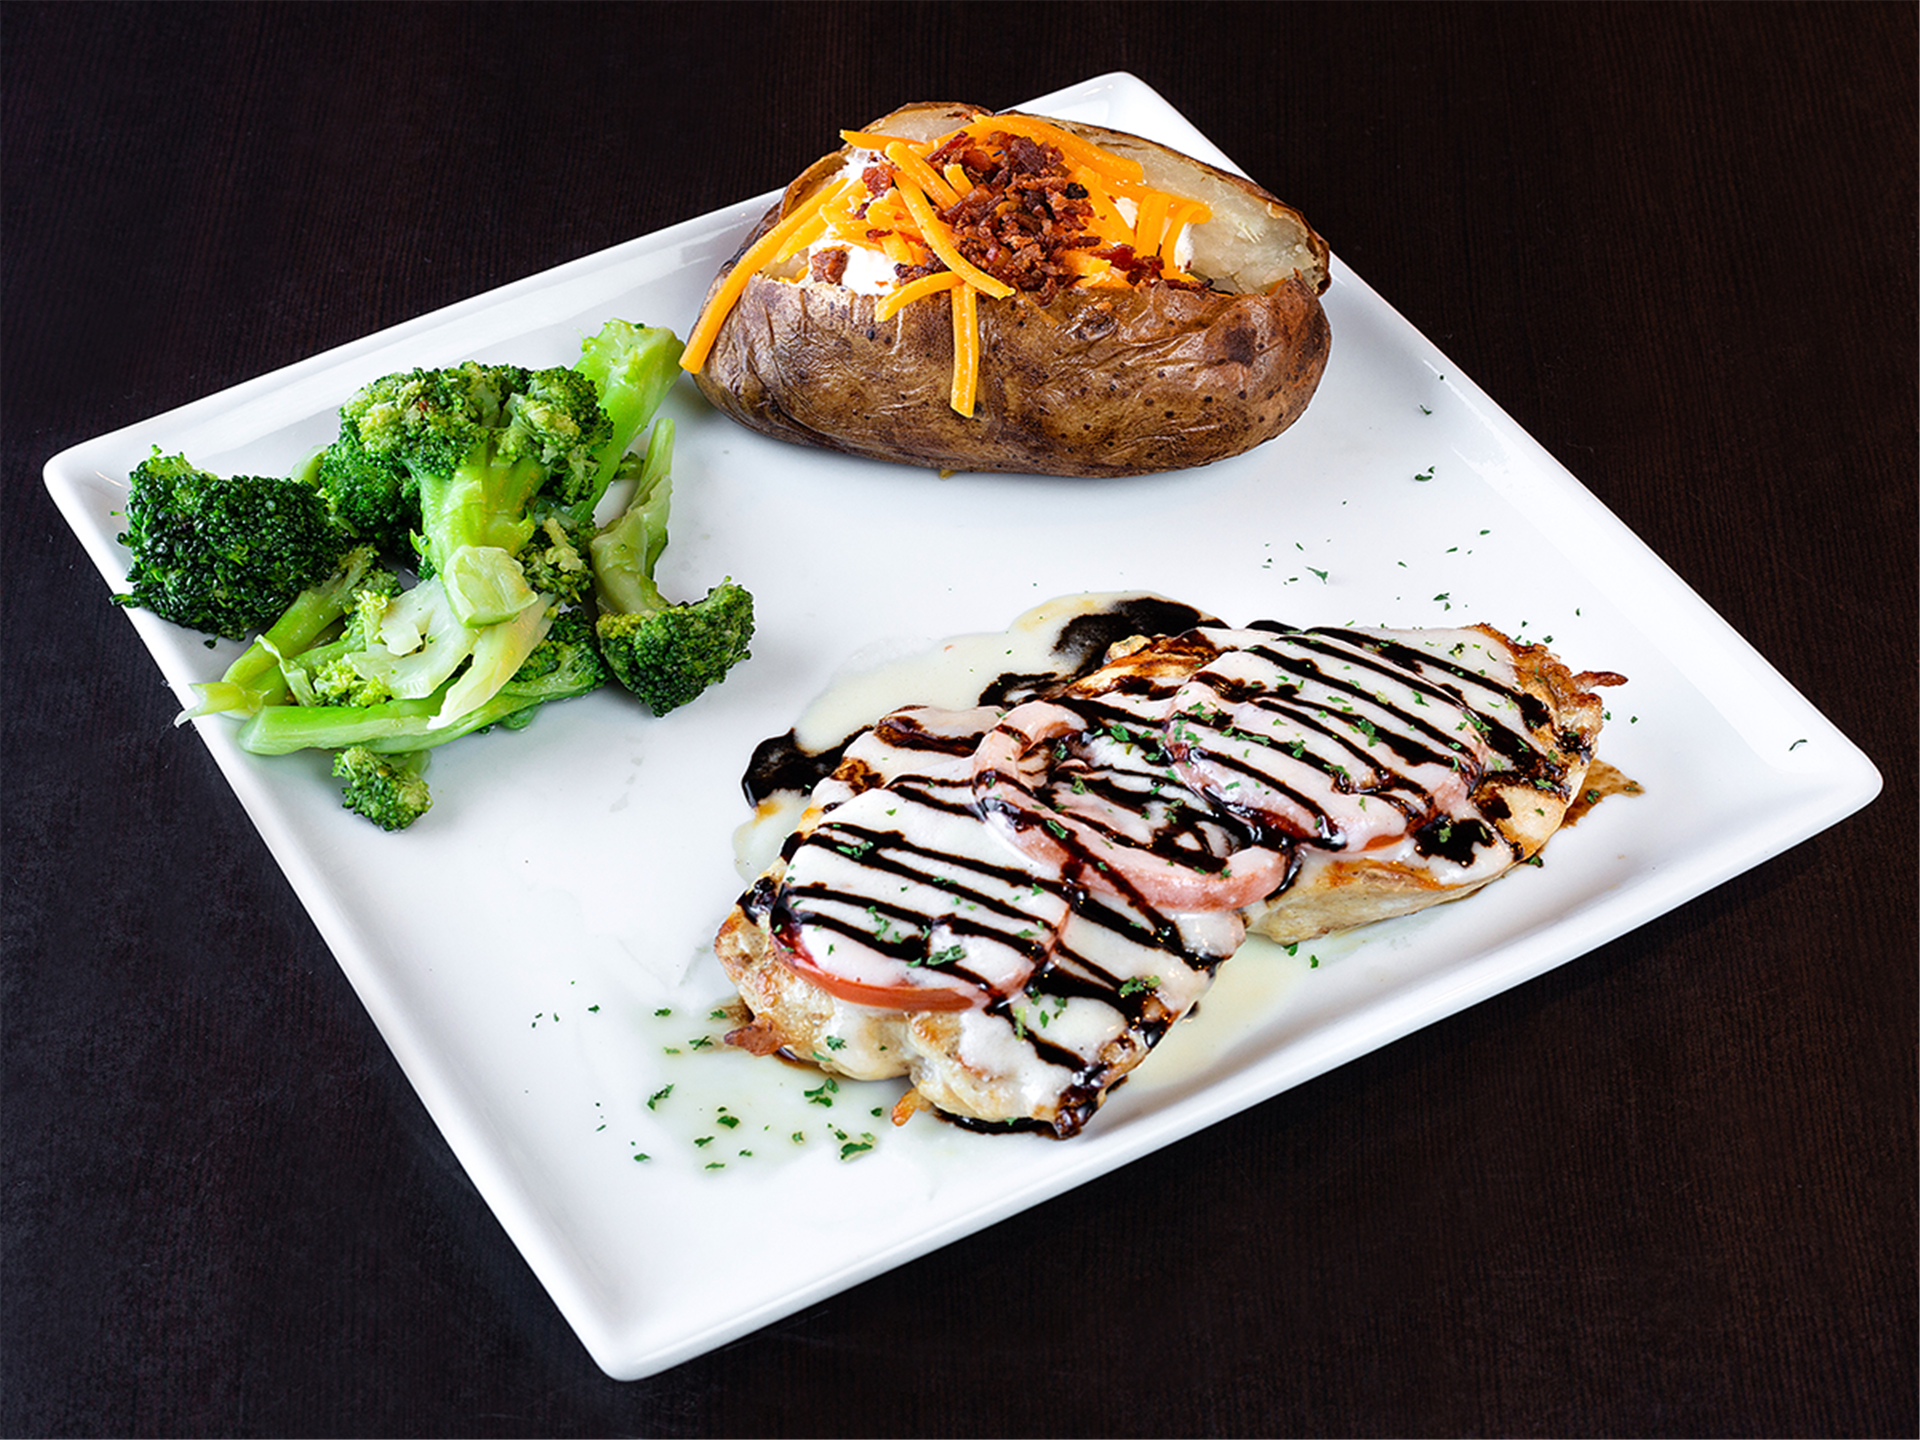 Chicken Balsa wood-fired chicken breast topped with roma tomatoes, lemon wine sauce and a balsamic reduction.